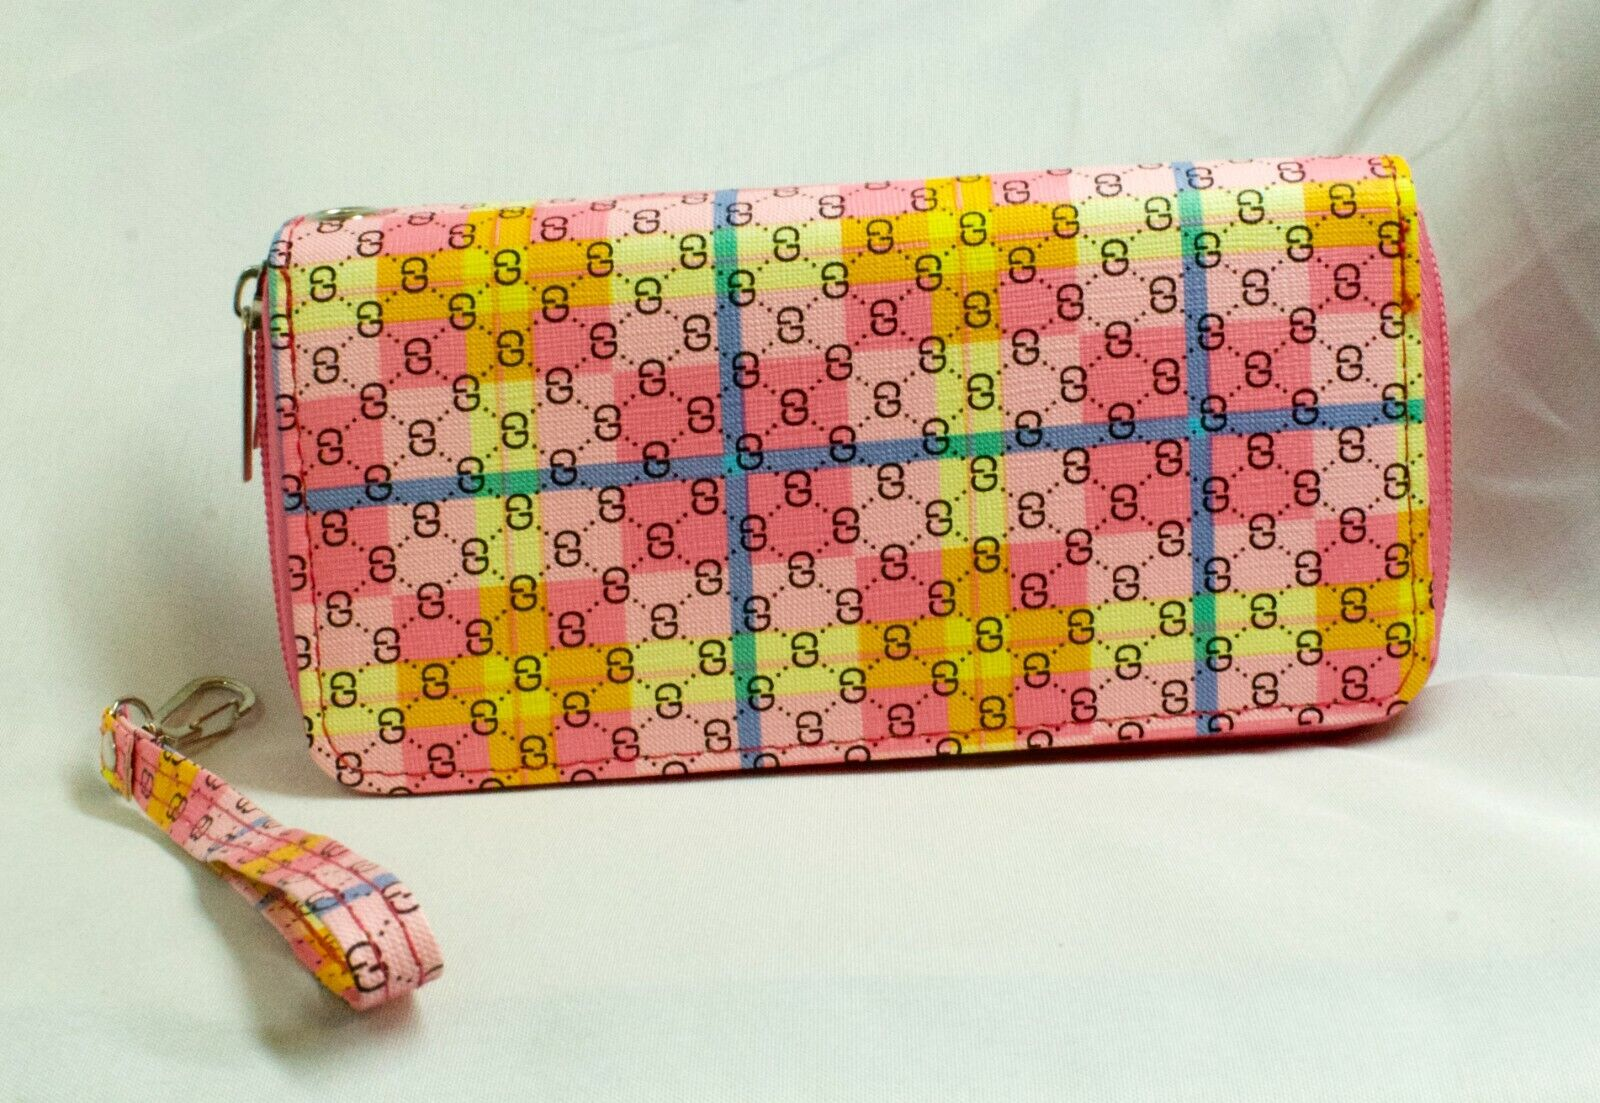 Ladies Wallet 2 zip closure divided sides, Plaid pattern Checked Pink w/ yellow